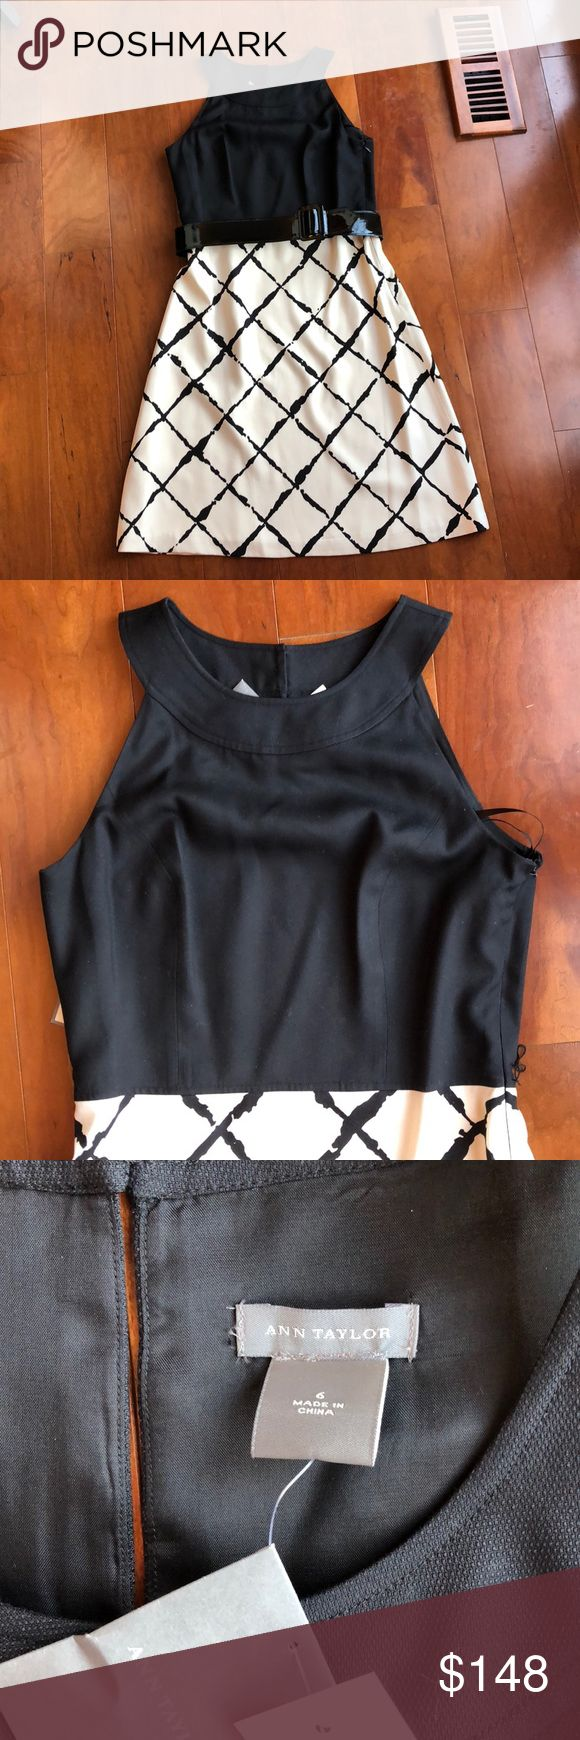 NWT ANN TAYLOR BLACK AND WHITE SILK DRESS, SIZE 6 New with tags. Ann Taylor Black and White Silk Dress with removable black belt, Size 6. This 100% Silk Dress features a solid black bodice with a check board pattern skirt. Belt breaks bodice from skirt portion of dress. Dress is sleeveless with a scoop collar and three small buttons in back.  Side zipper. Lined. Ann Taylor Dresses Strapless